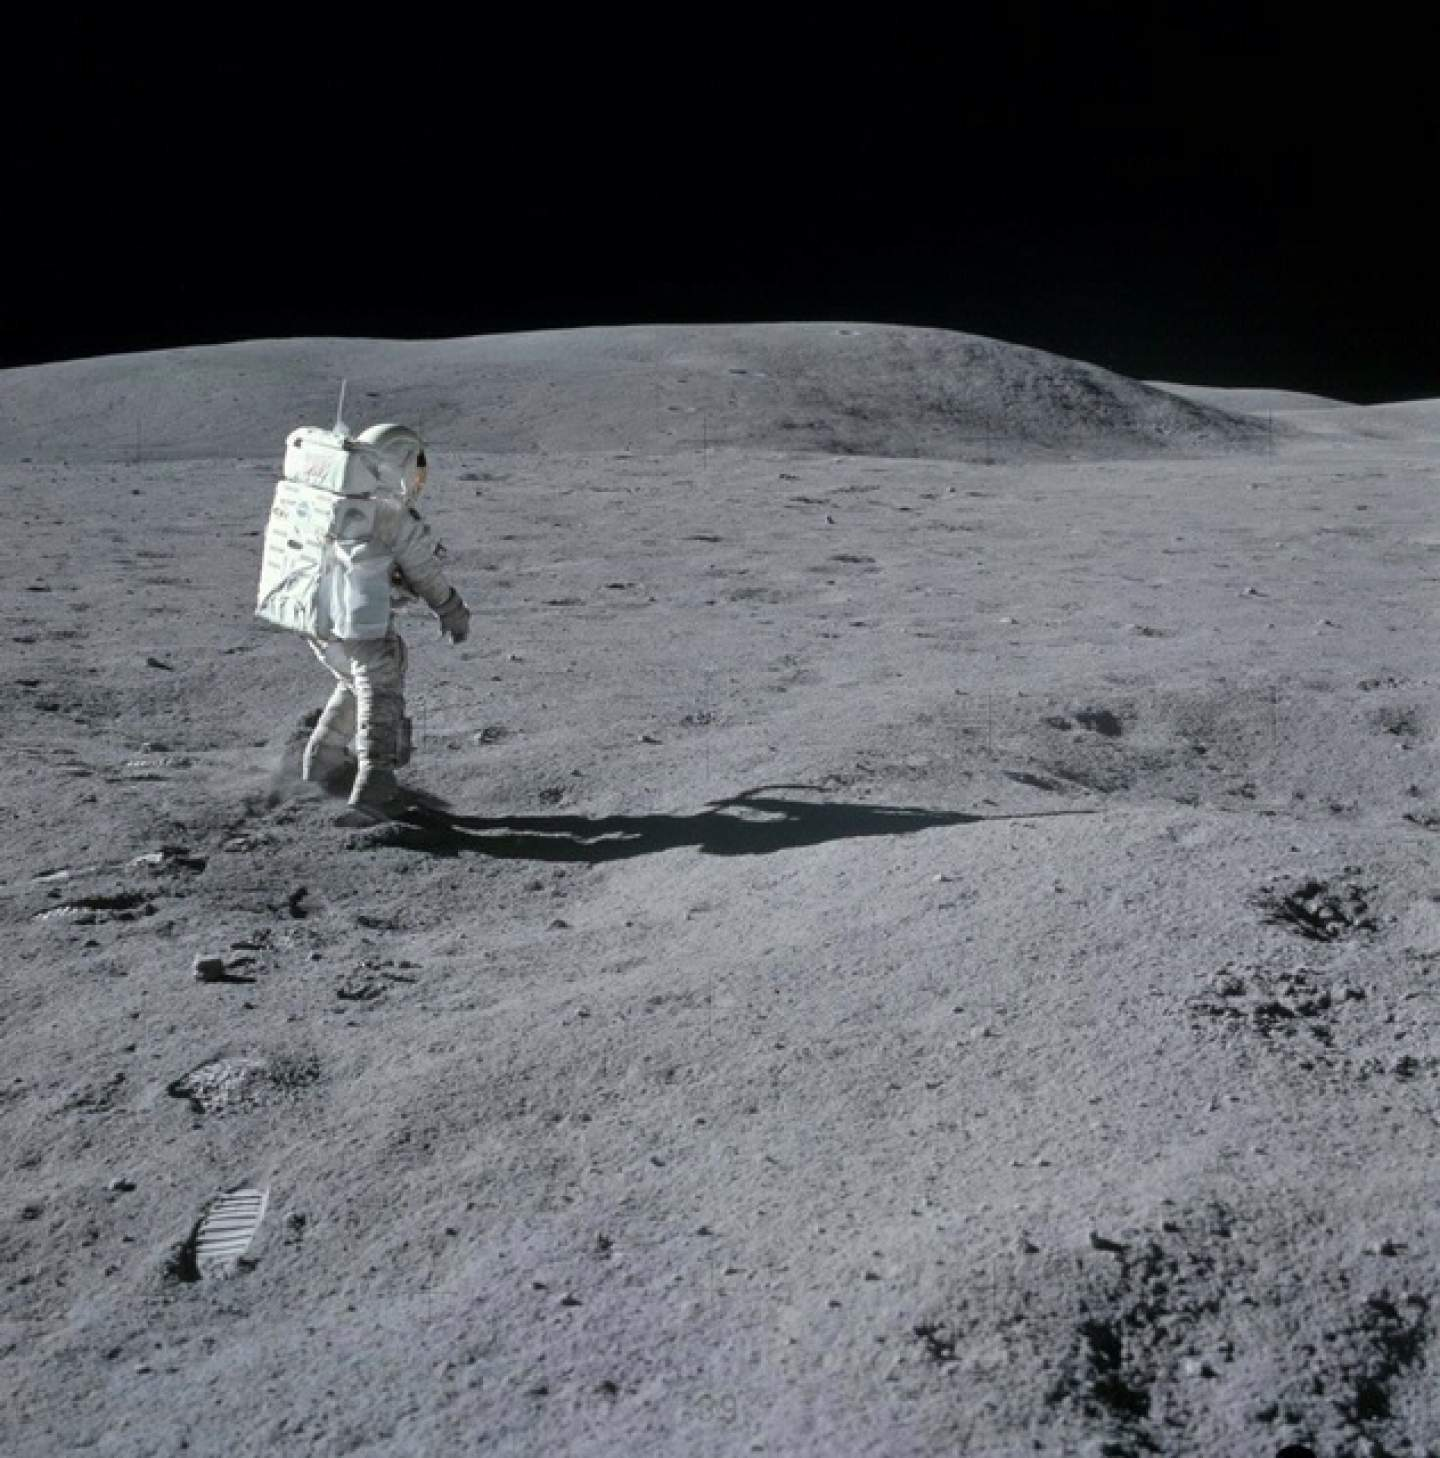 Charlie Duke stands in awe of the Moon during his 3-day visit there in 1972. (NASA: AS16-114-18427)